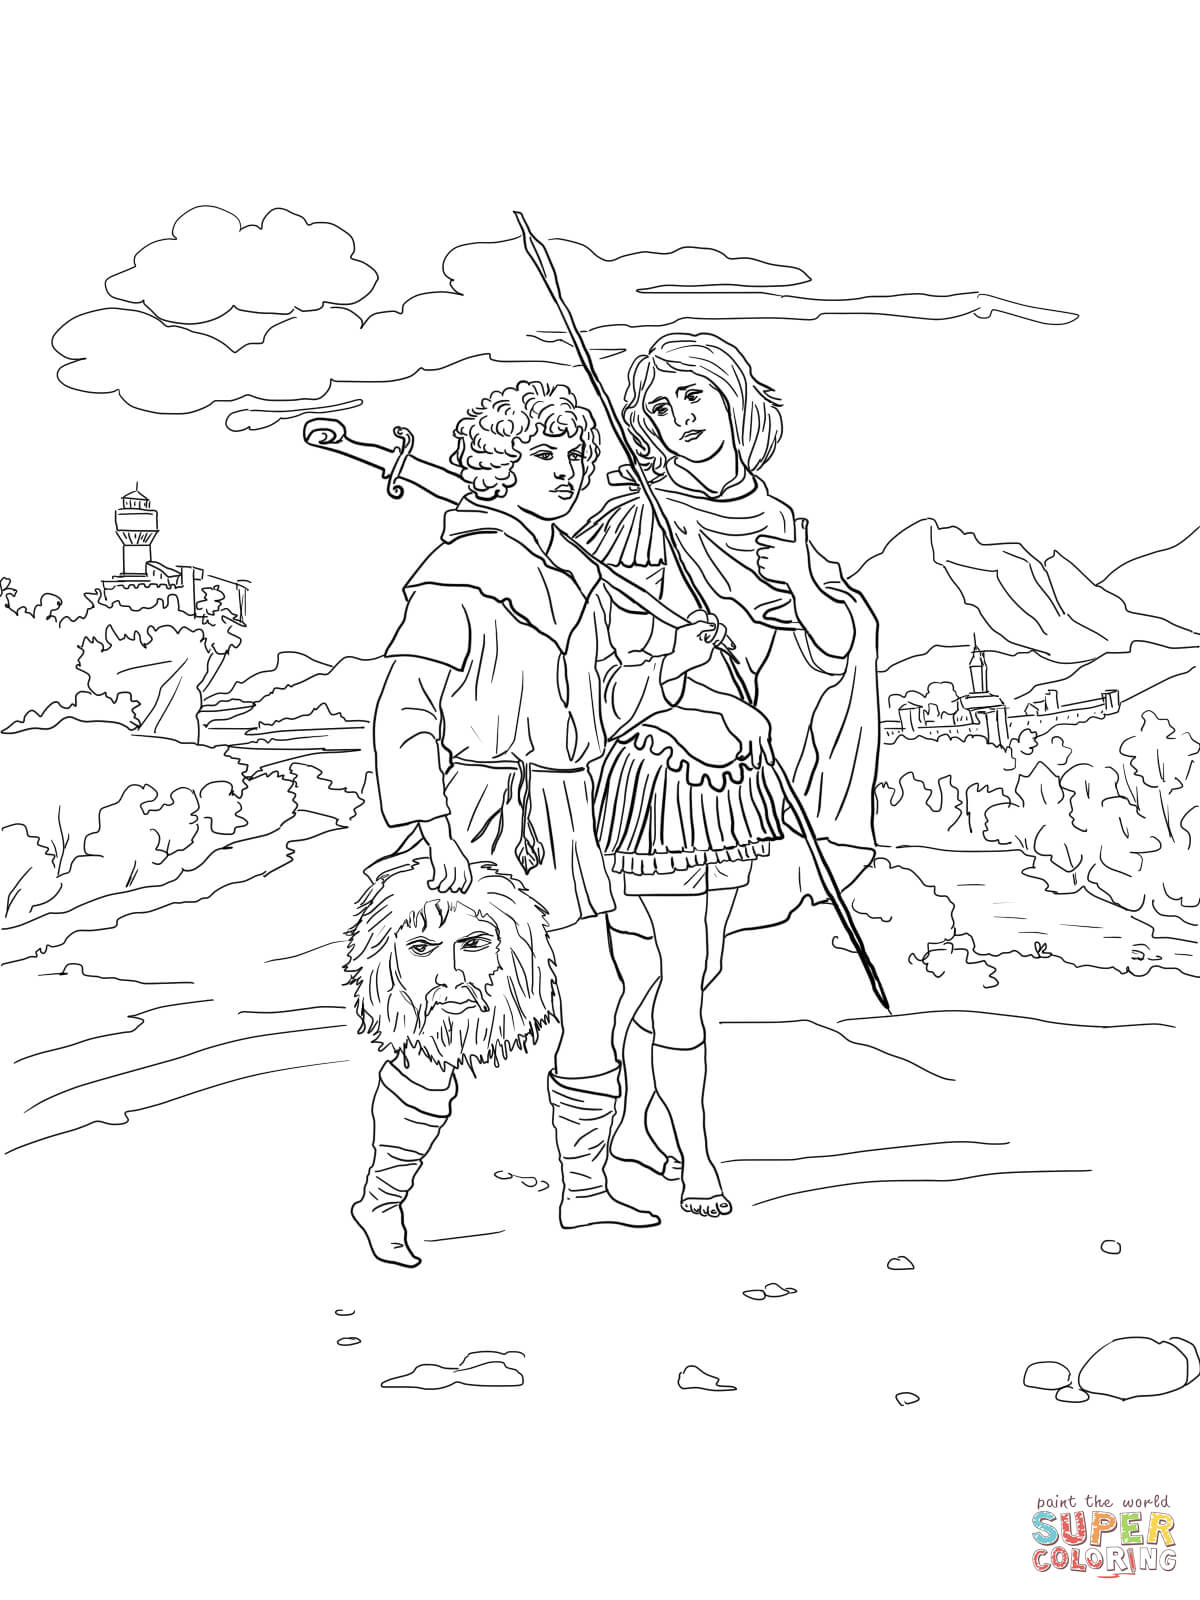 ark of the covenant pictures to color the ark of covenant coloring page coloring pages ark to covenant of color pictures the